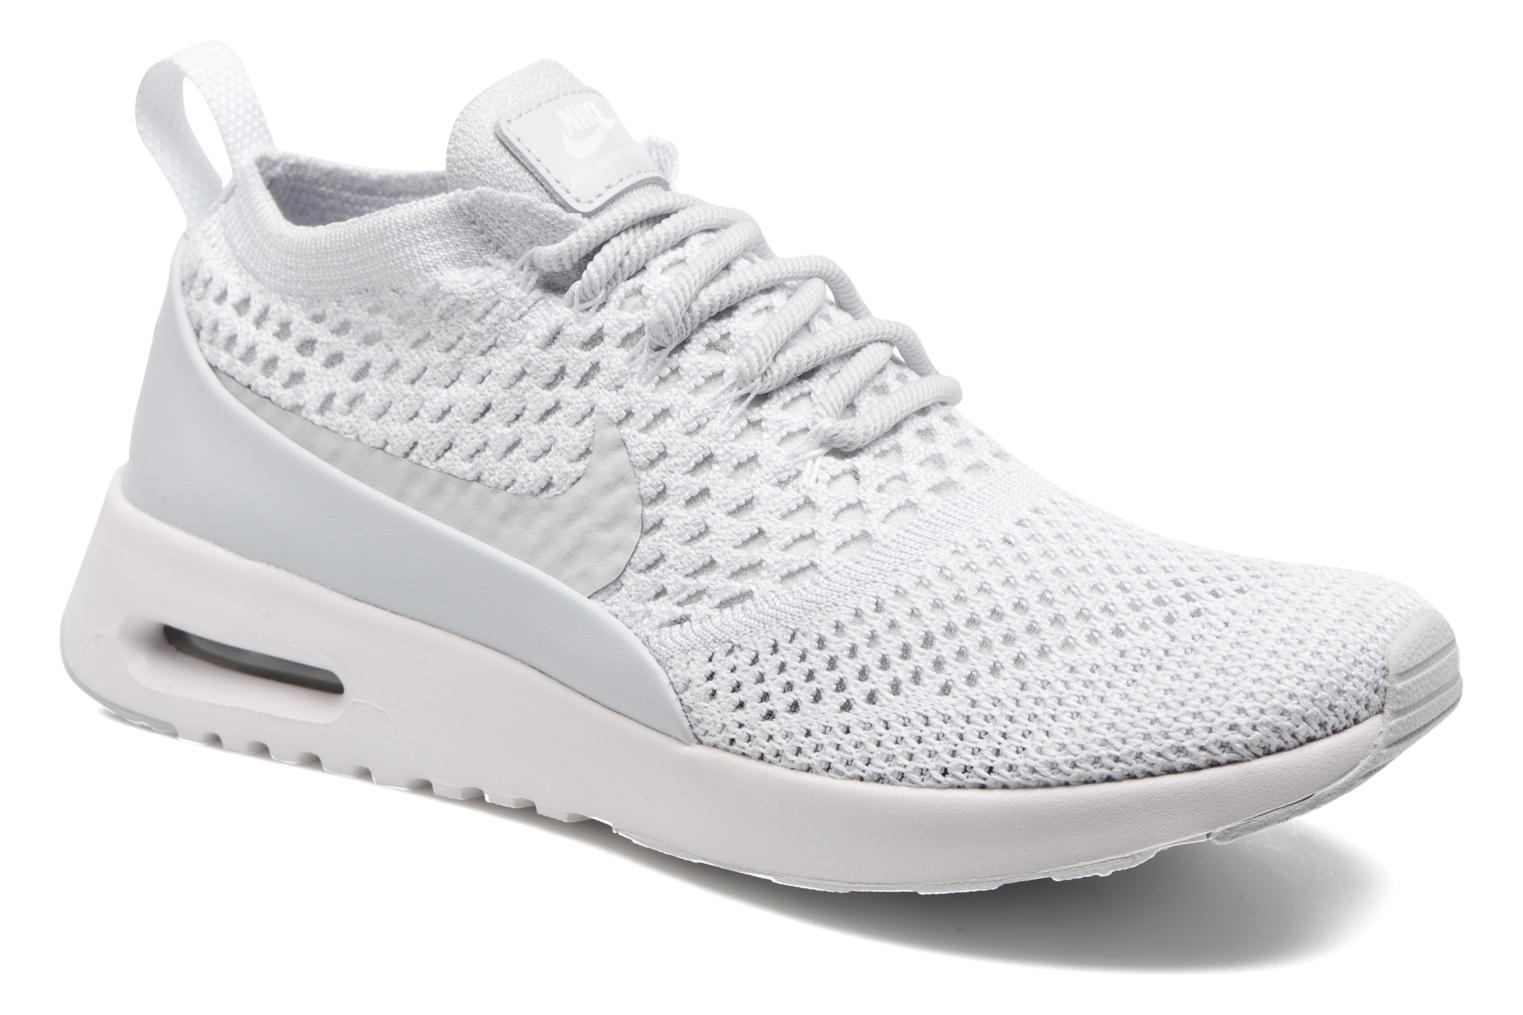 PURE PLATINUM/PURE PLATINUM-WHITE Nike W Nike Air Max Thea Ultra Fk (Gris)